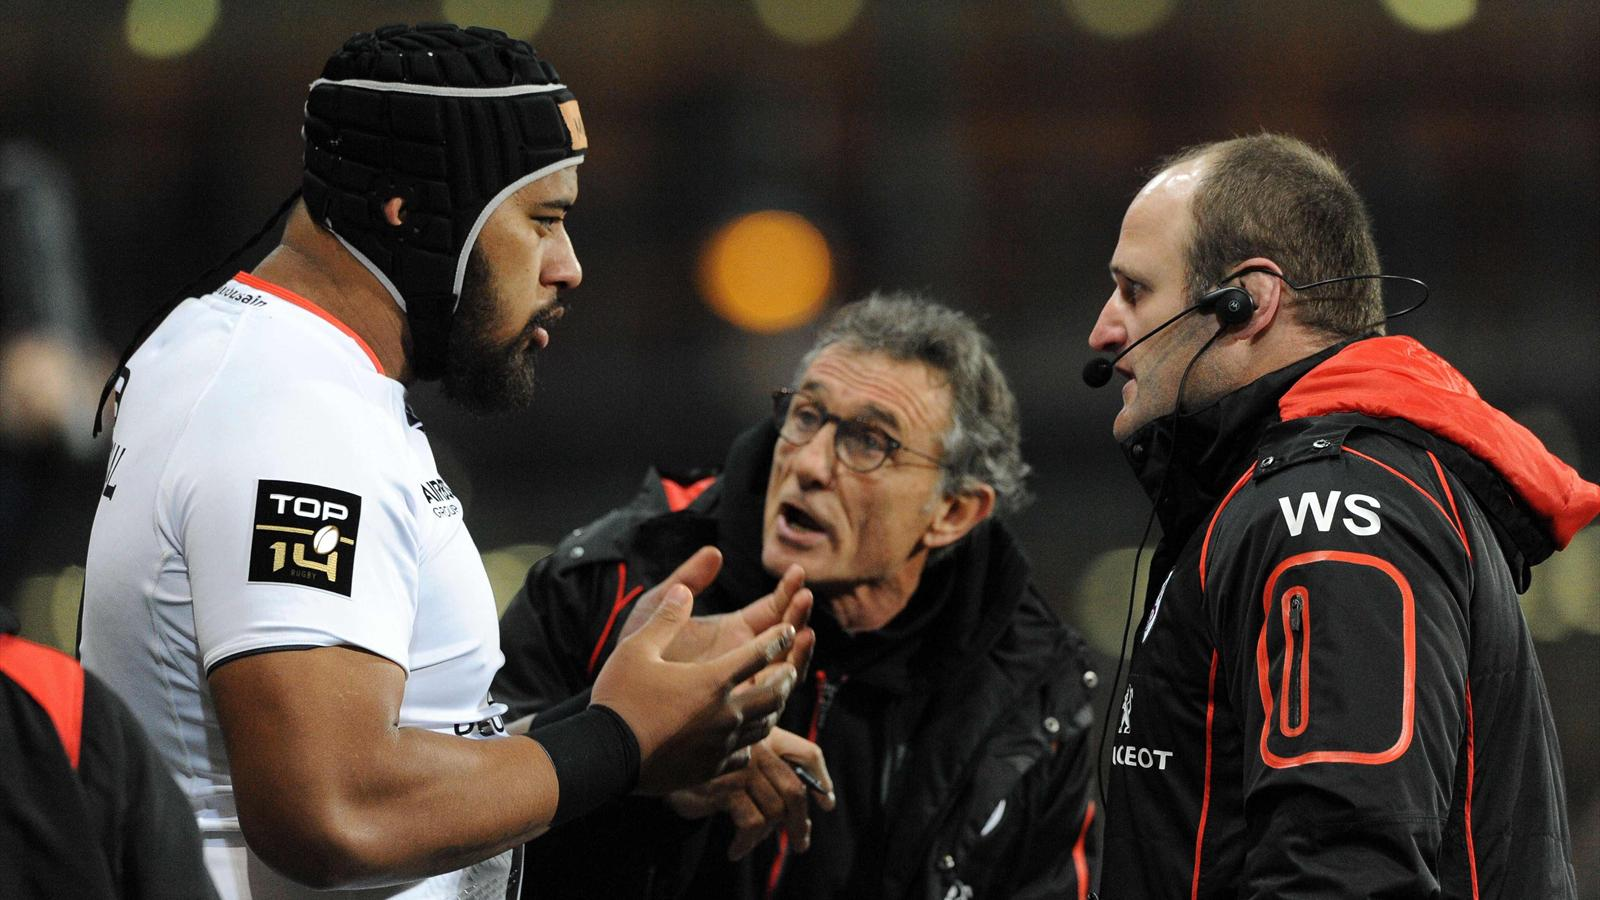 Edwin Maka, Guy Novès, William Servat. Oyonnax-Toulouse, 6 mars 2015